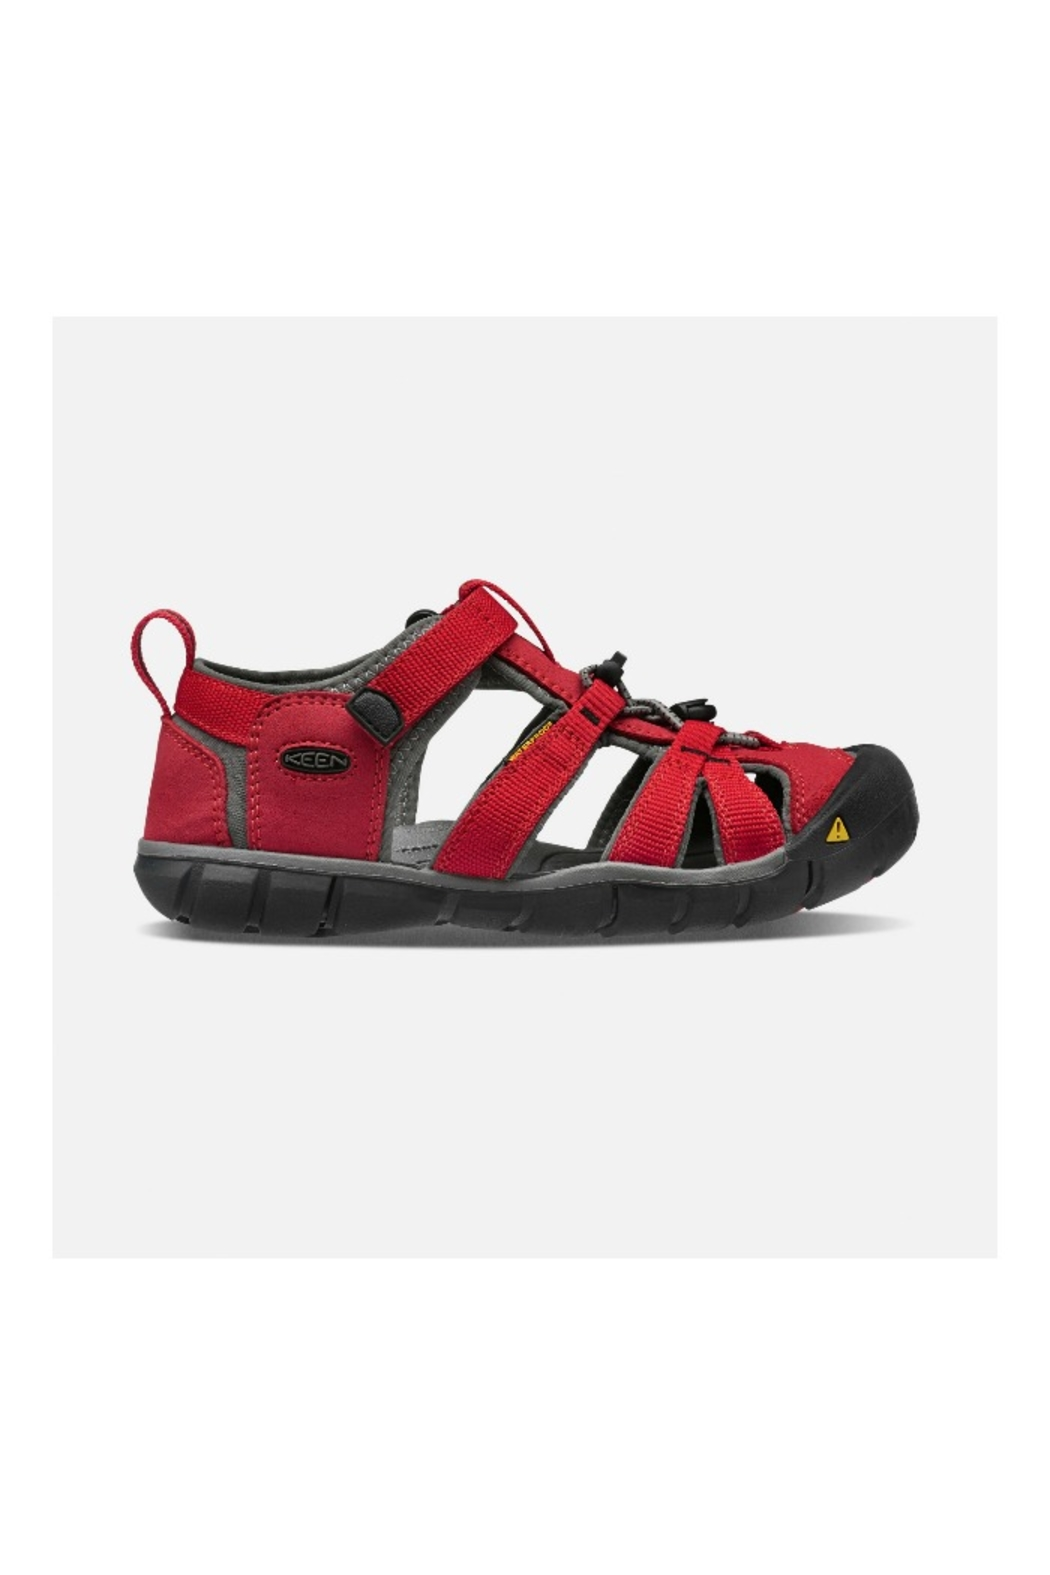 Keen Seacamp II CNX Youth in Racing Red/Gargoyle - Front Full Image